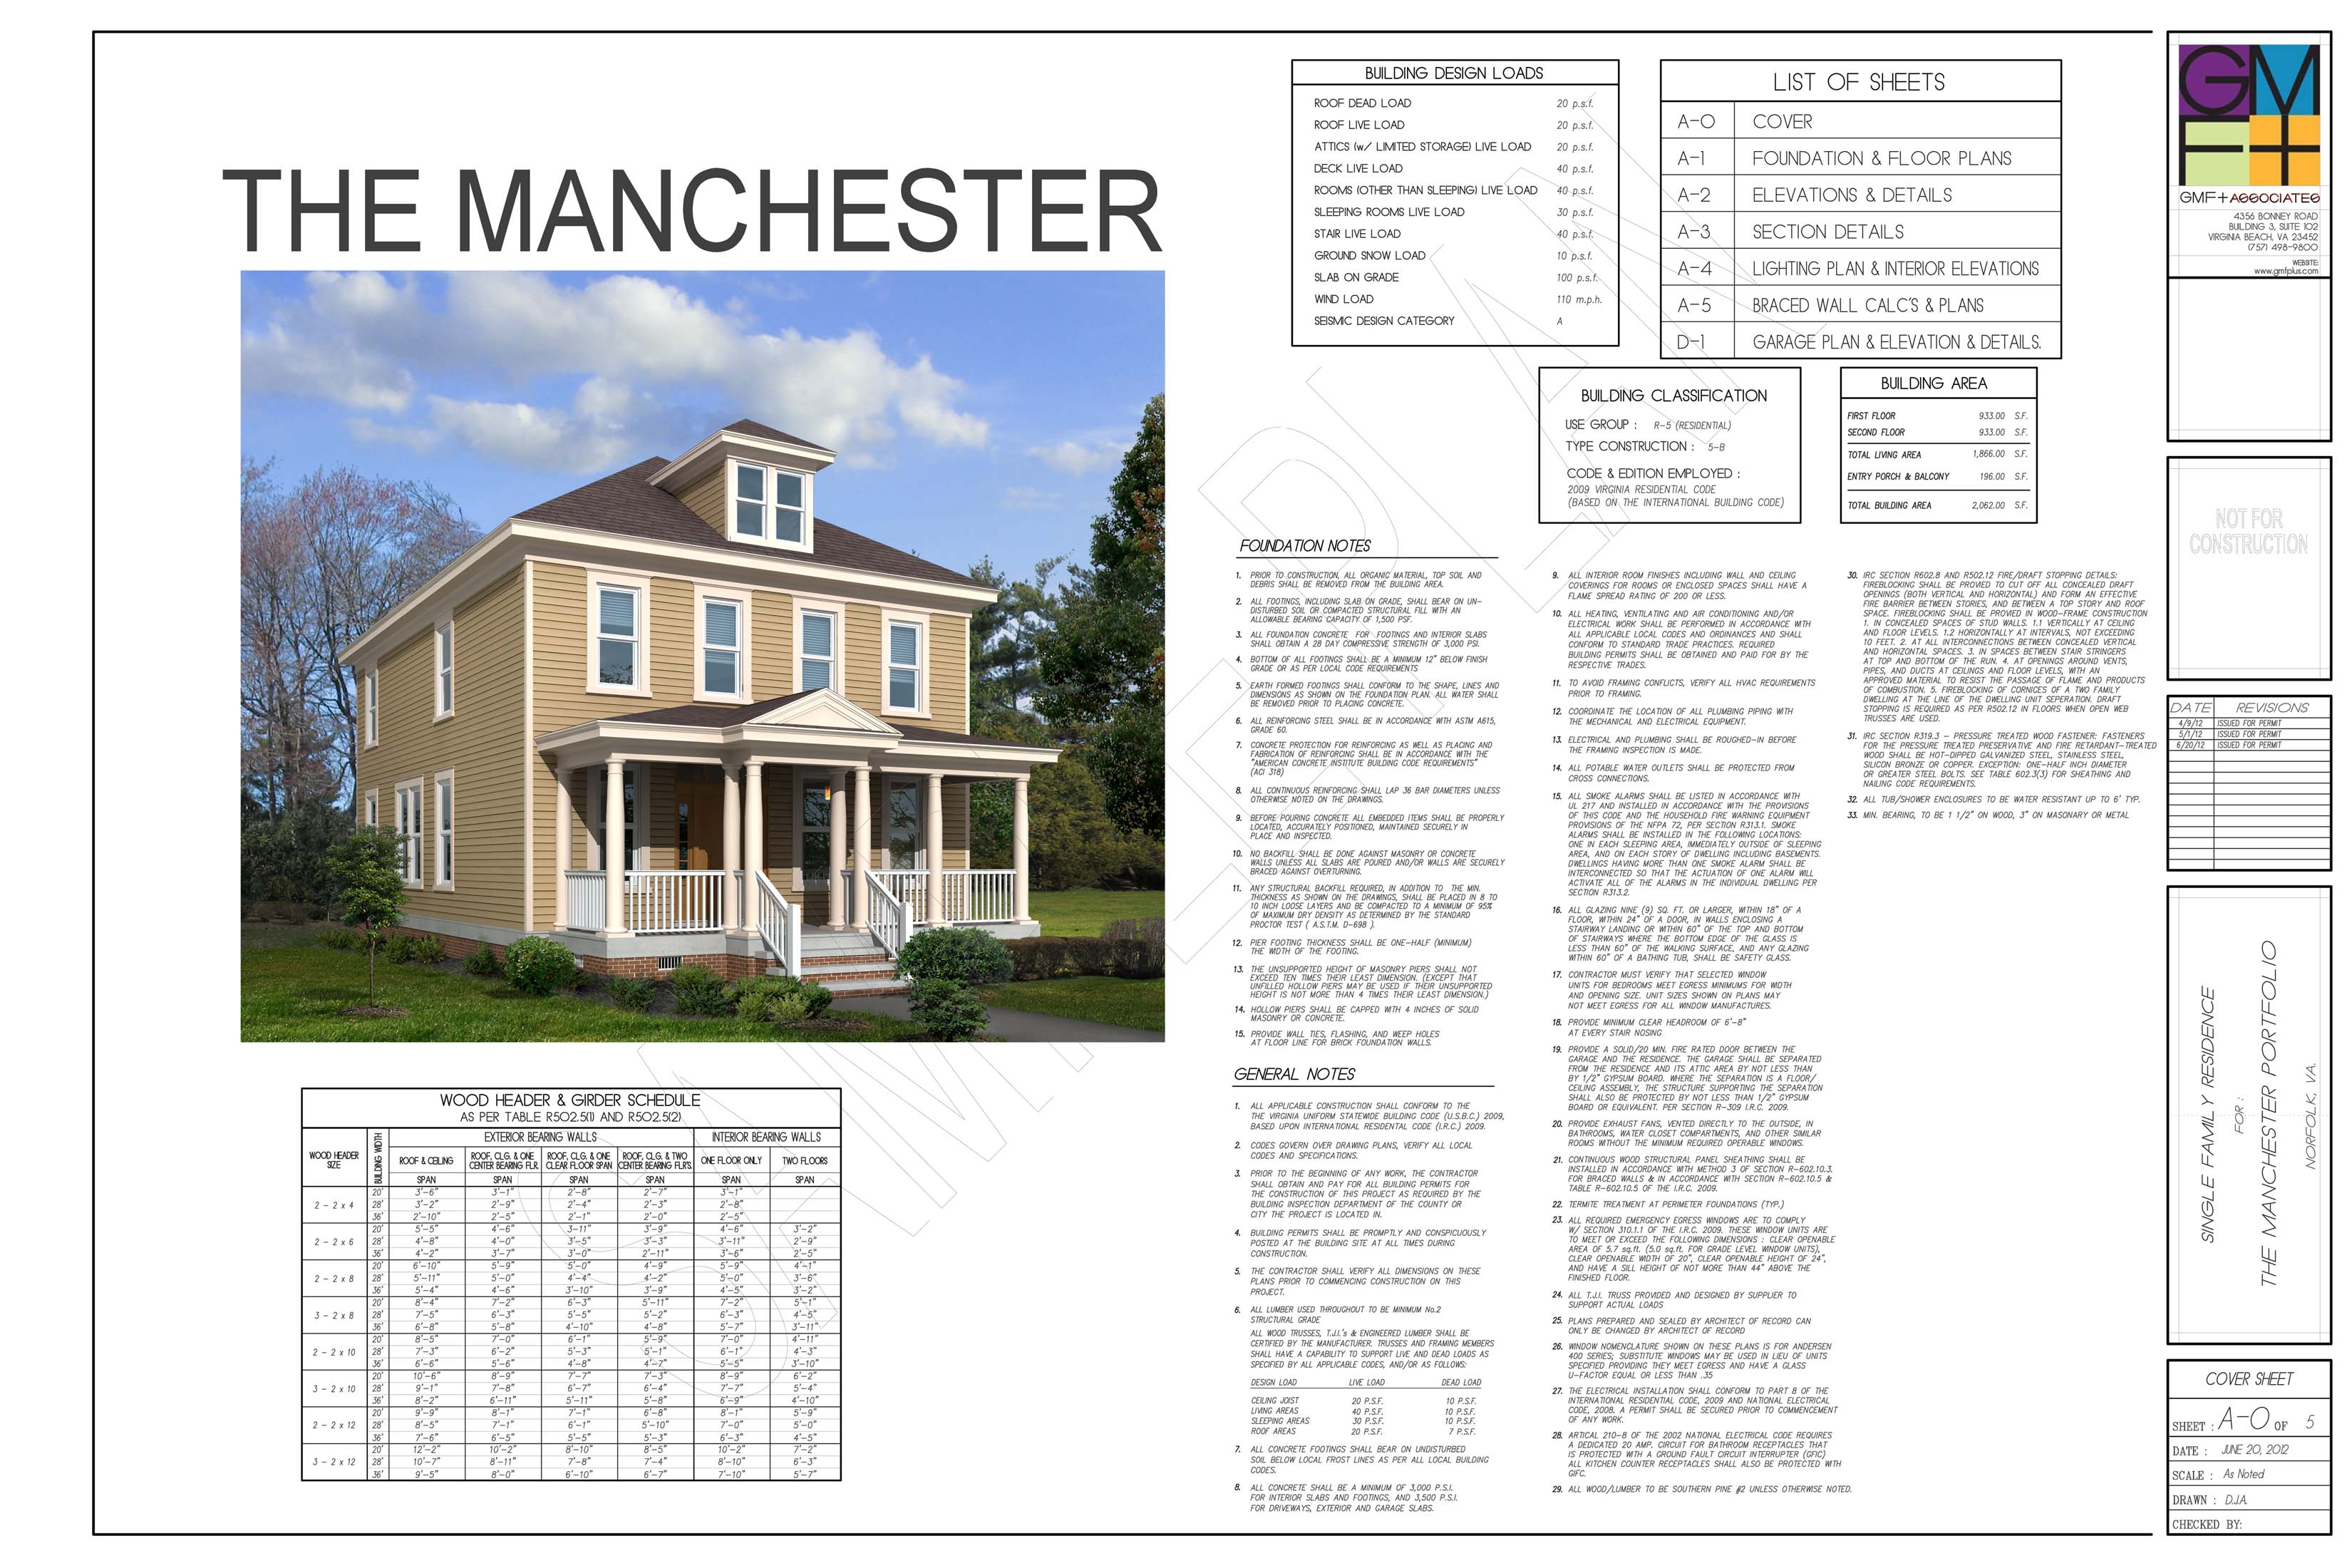 Sample plan set gmf architects house plans gmf for Home construction specification sheet